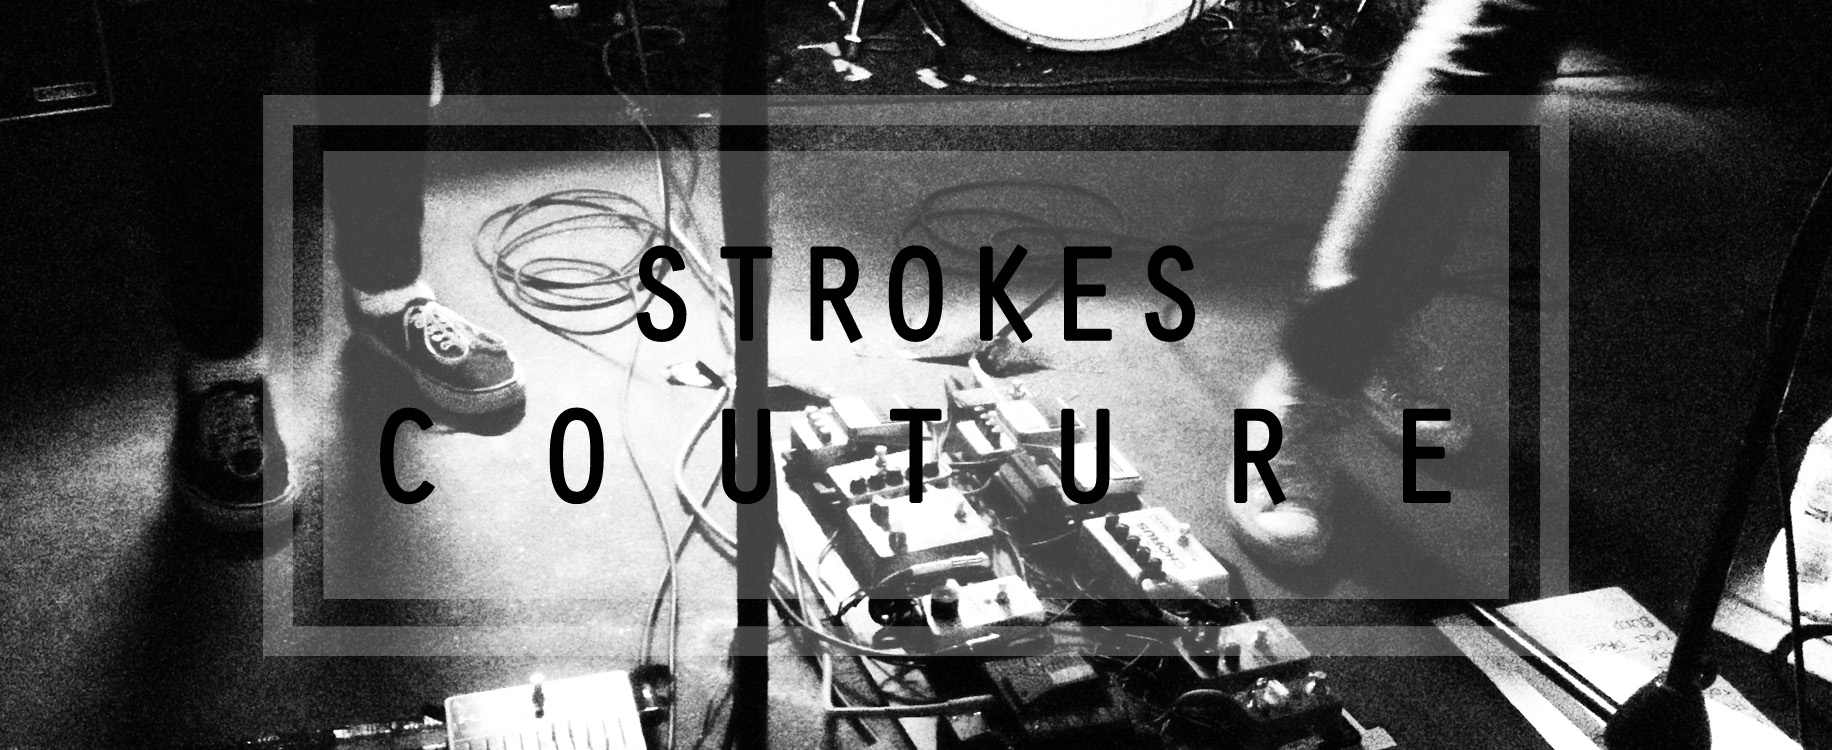 Strokes Couture Header.jpg